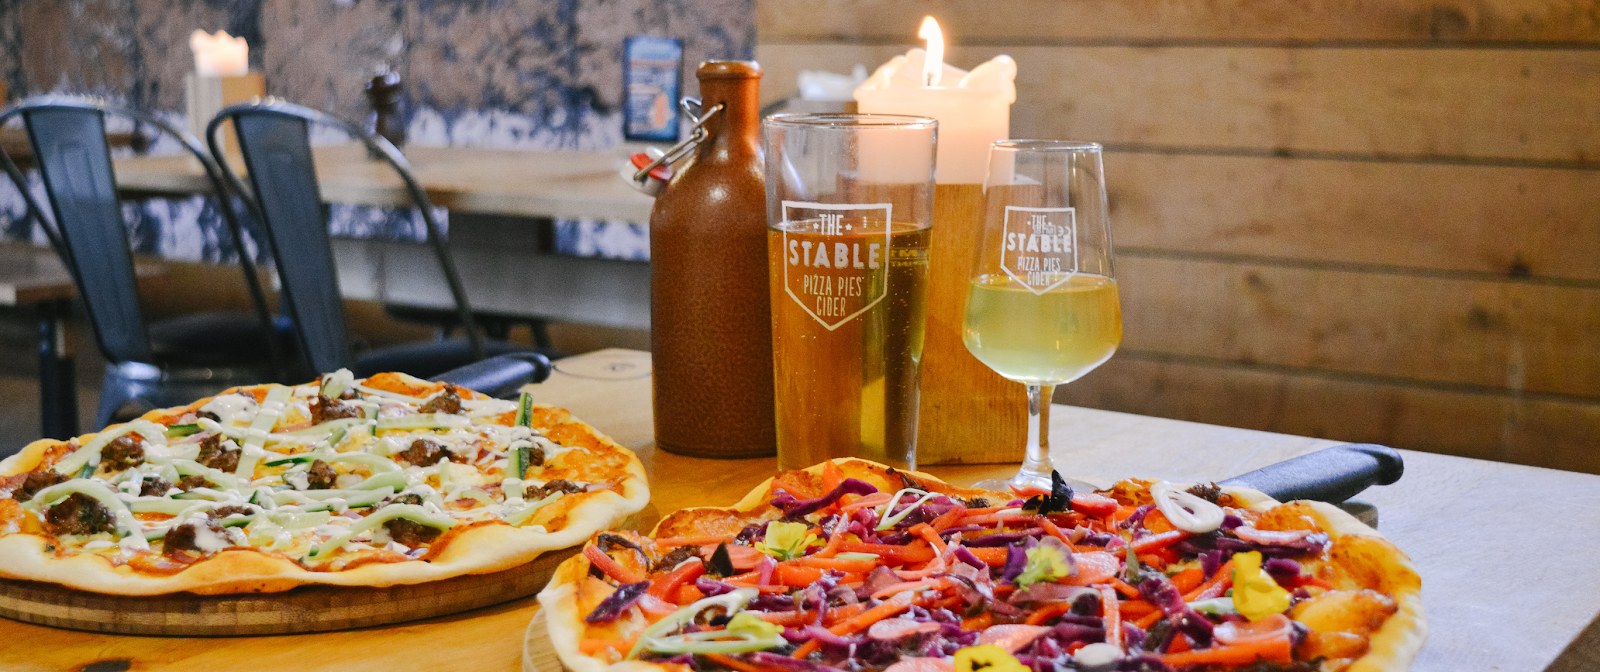 The Stable Winchester Pizza and Cider, The Stable Winchester Review, Places to eat in Winchester